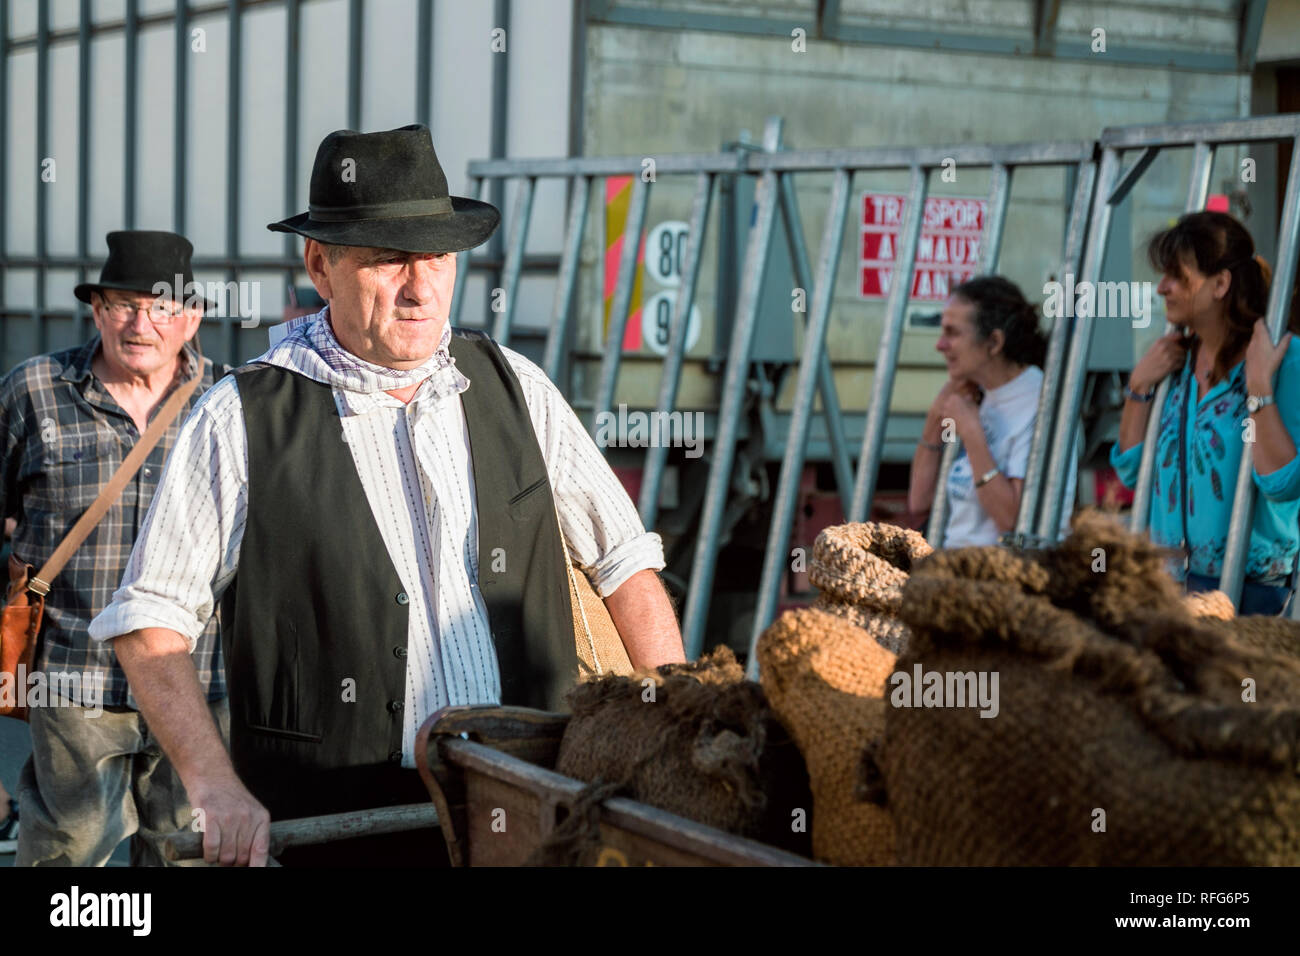 Coal seller pushing sacks on cart in Old School Parade of traditional trades at Annual Fete, Saint Gilles, Gard, France - Stock Image